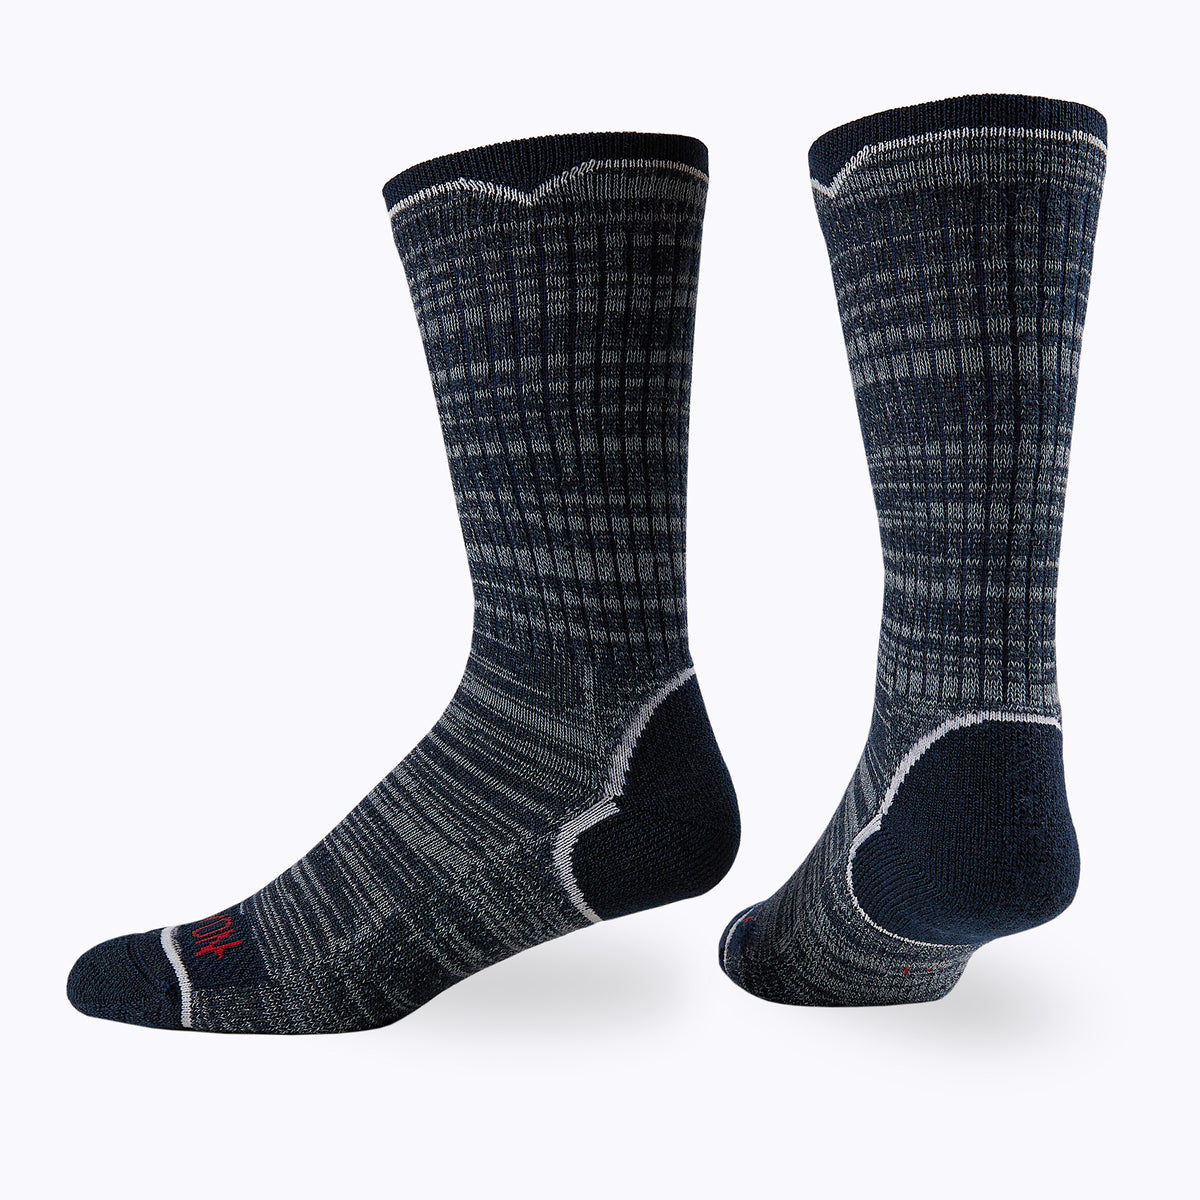 James Men's Mid-Calf Socks -  by Canyon Socks